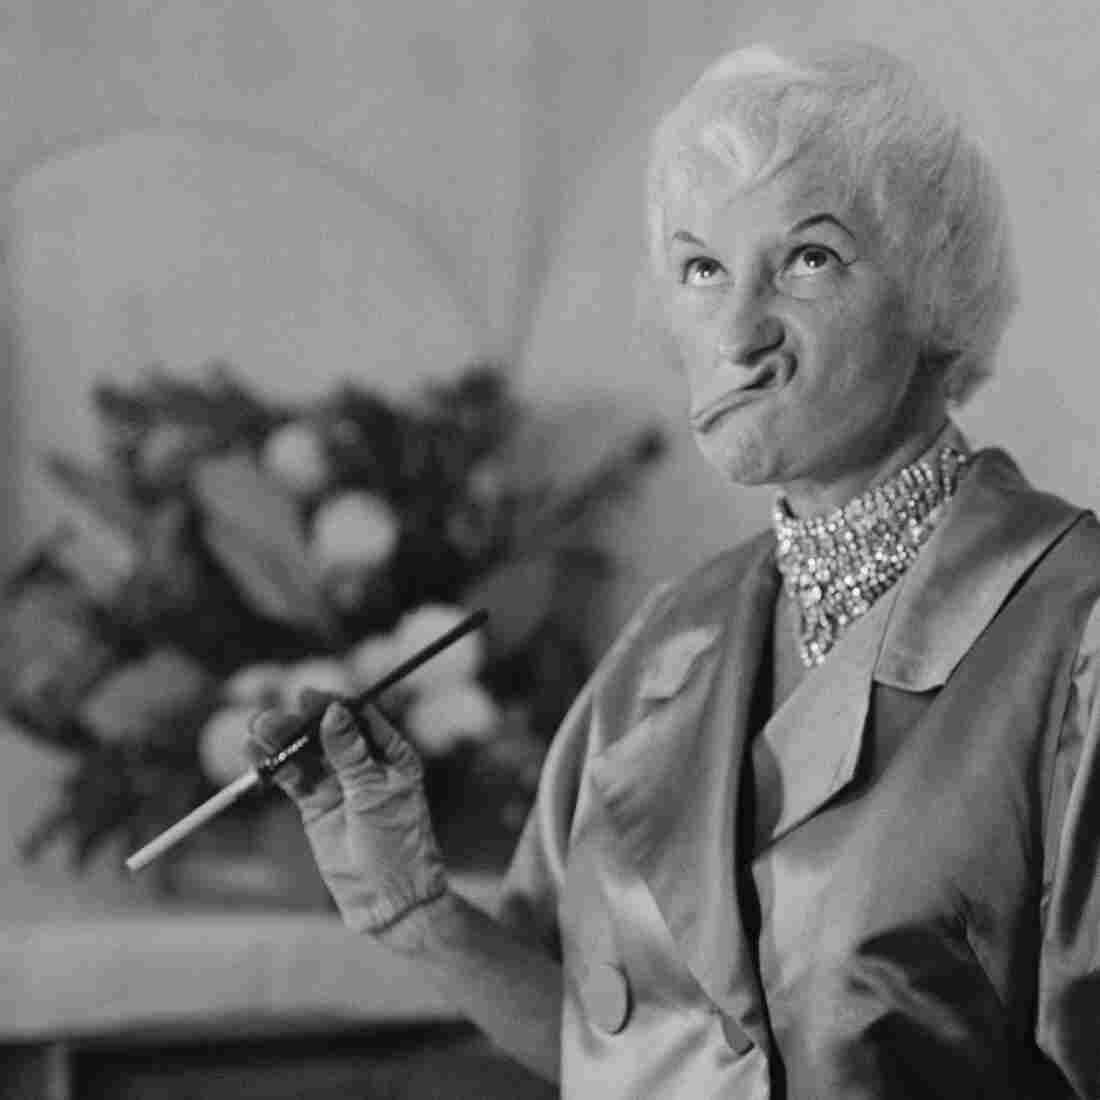 When Phyllis Diller began her career in comedy there were no female comedians making it big.